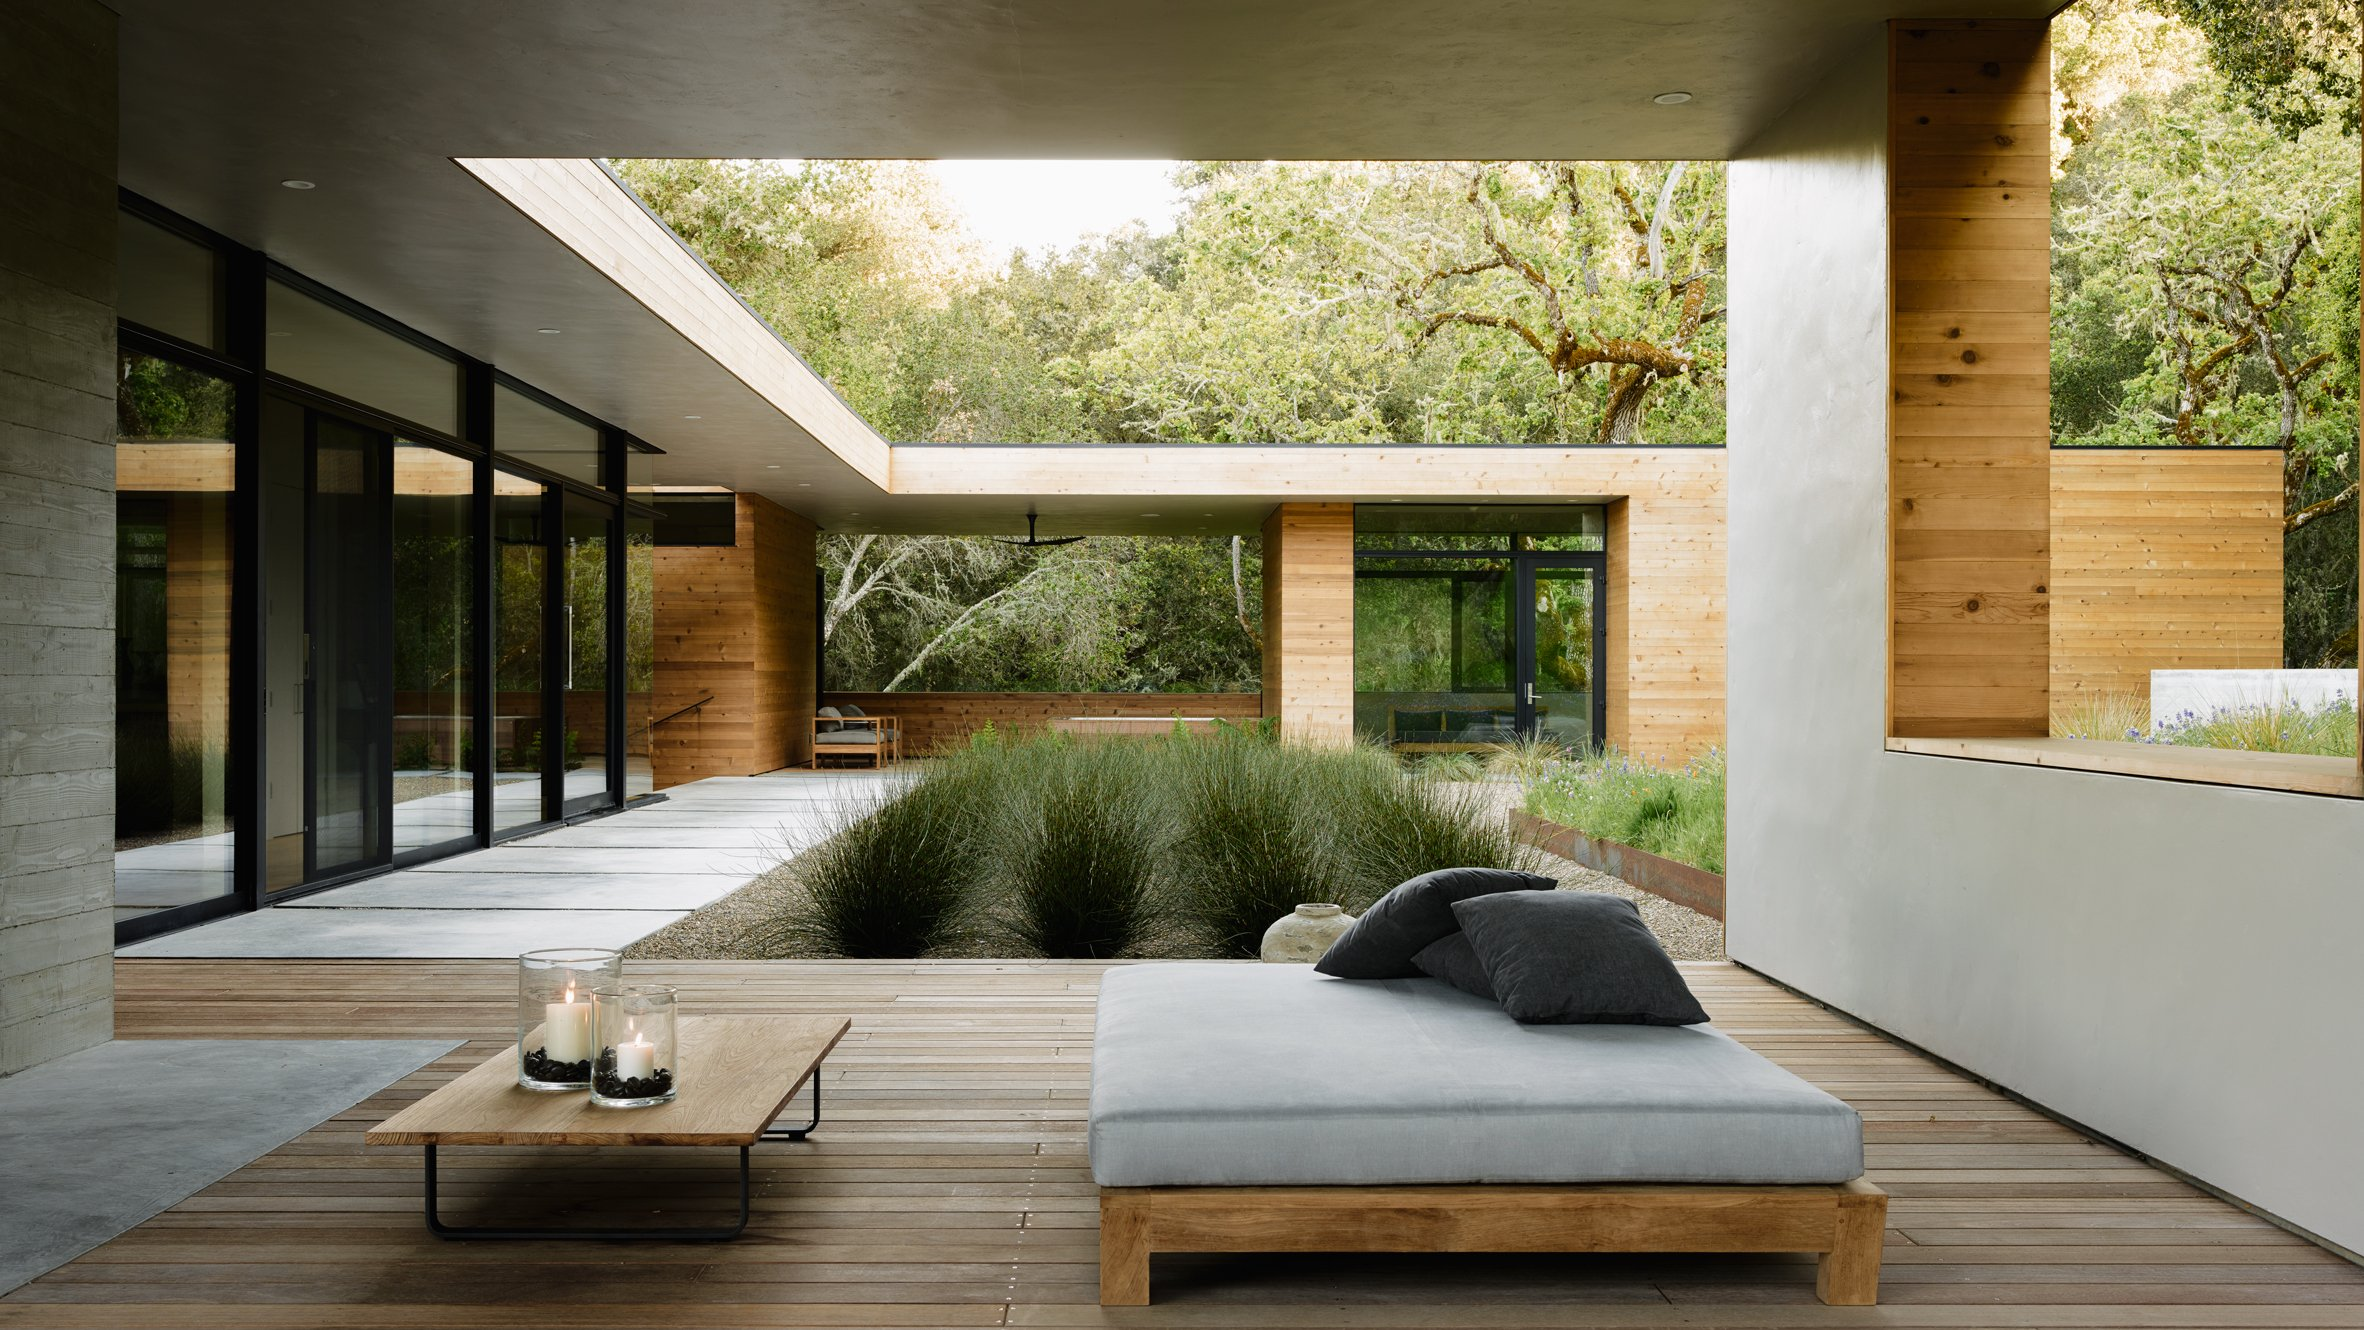 Sagan Piechota creates hillside California home surrounded by oak trees